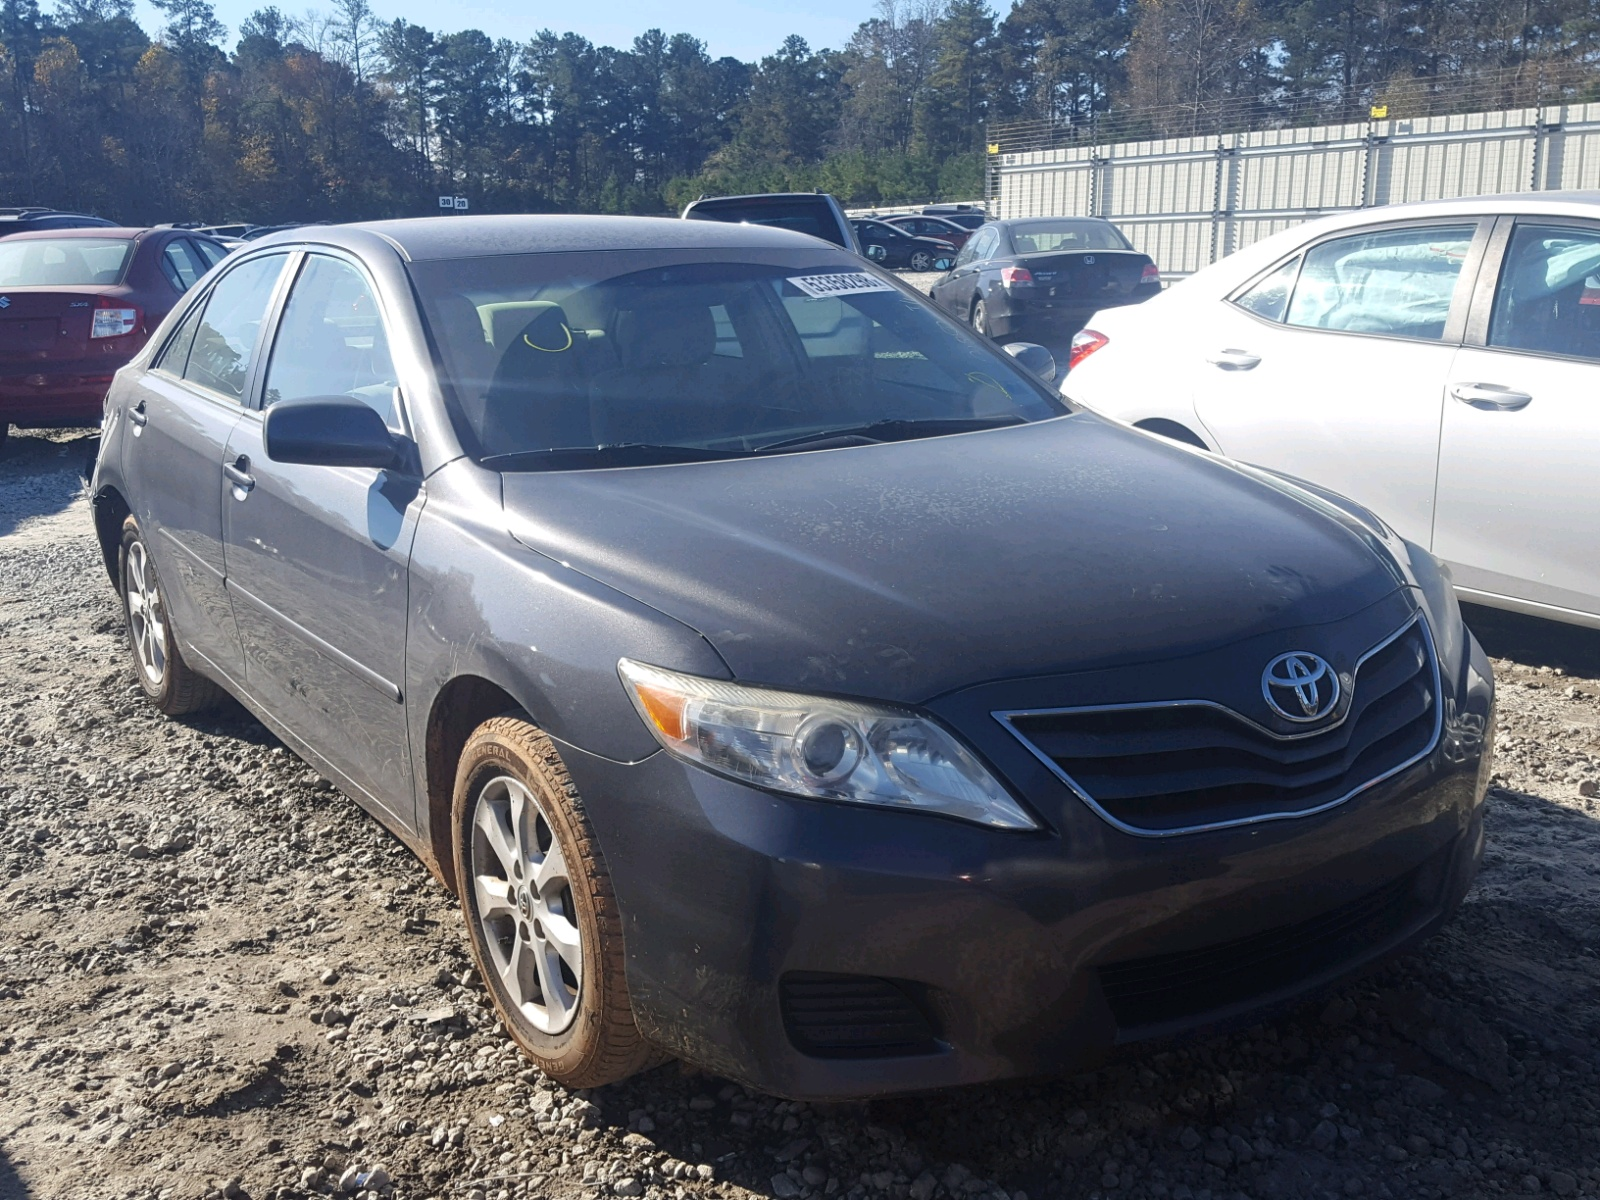 hight resolution of 2011 toyota camry base 2 5l left view